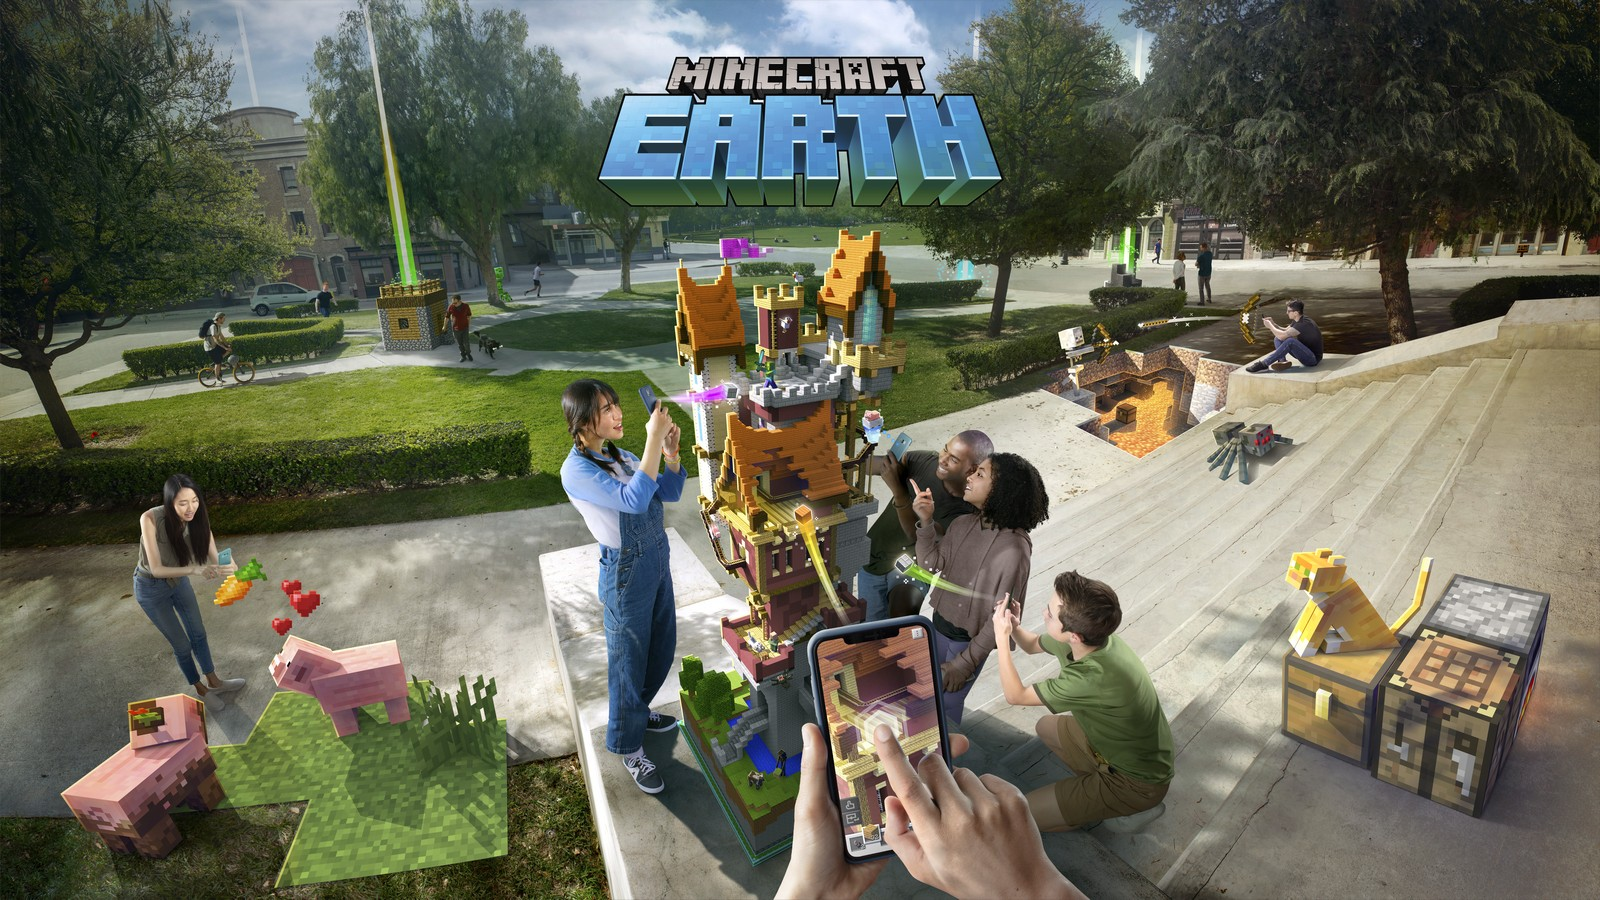 Look out Pokémon Go: Microsoft unveils new Minecraft Earth augmented reality game